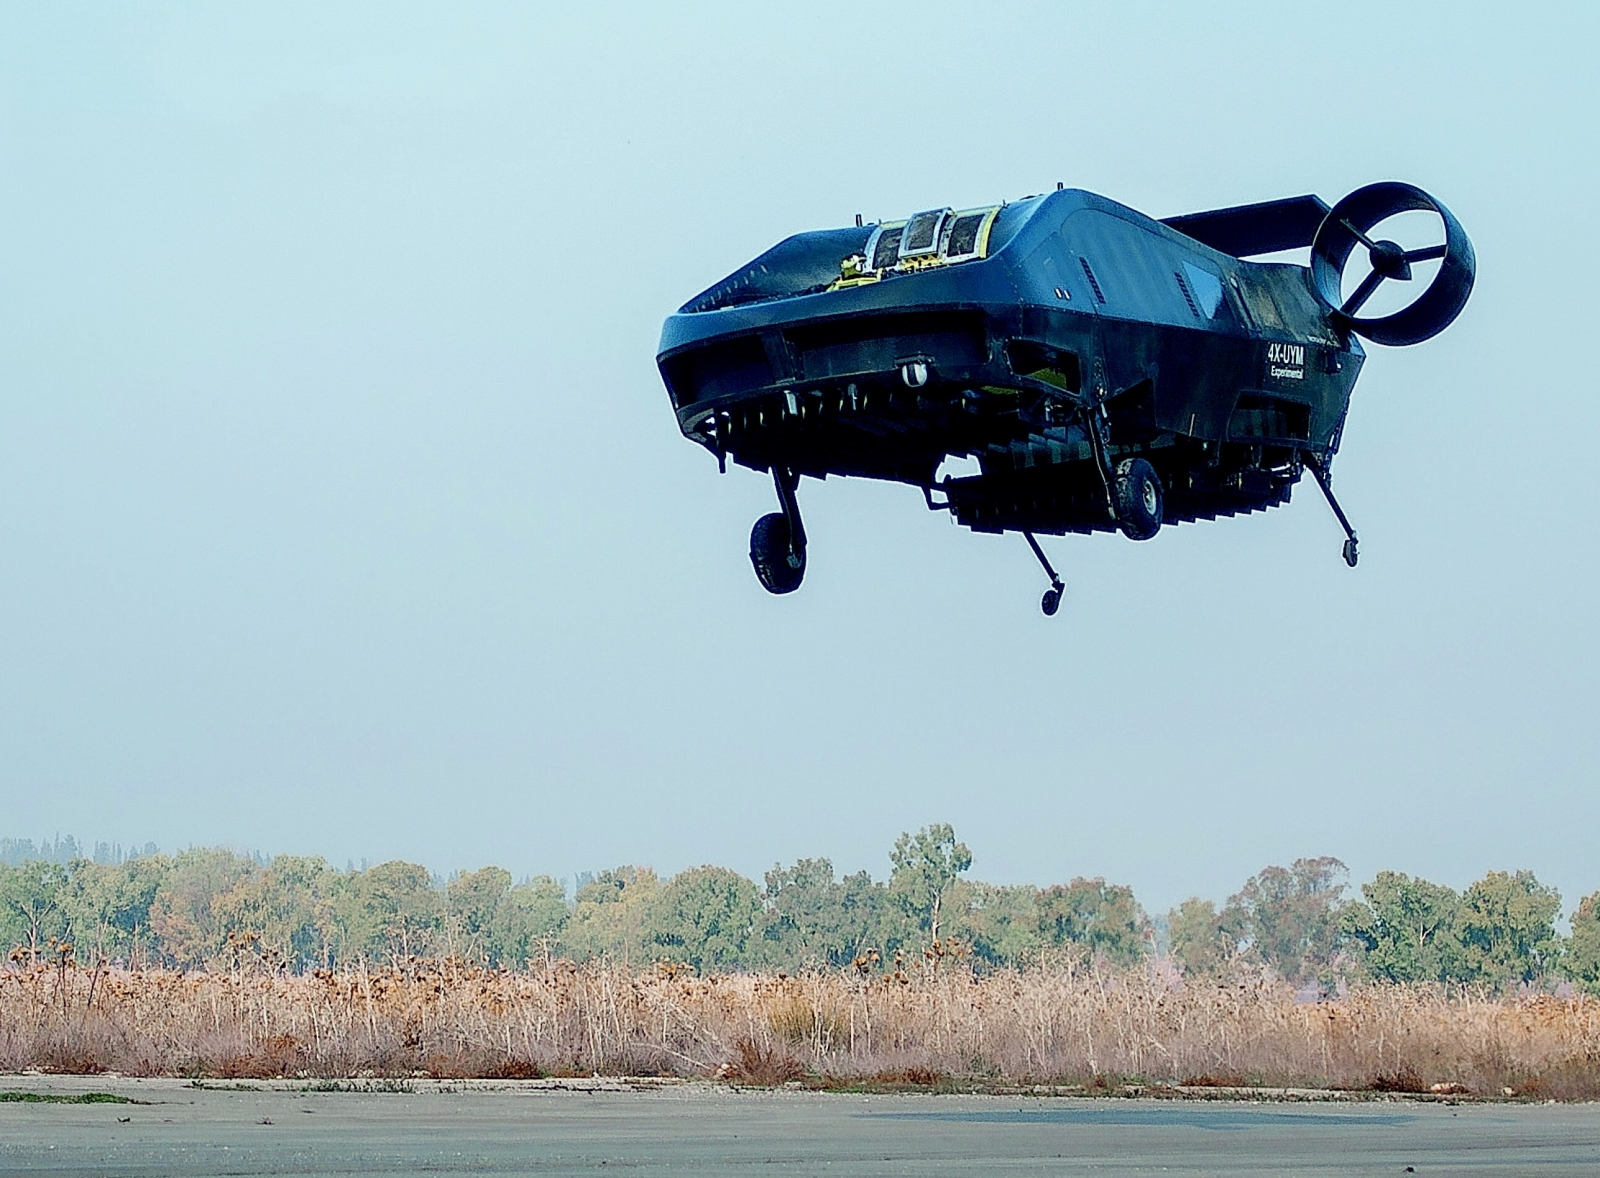 This VTOL UAV carries passengers and can fly where